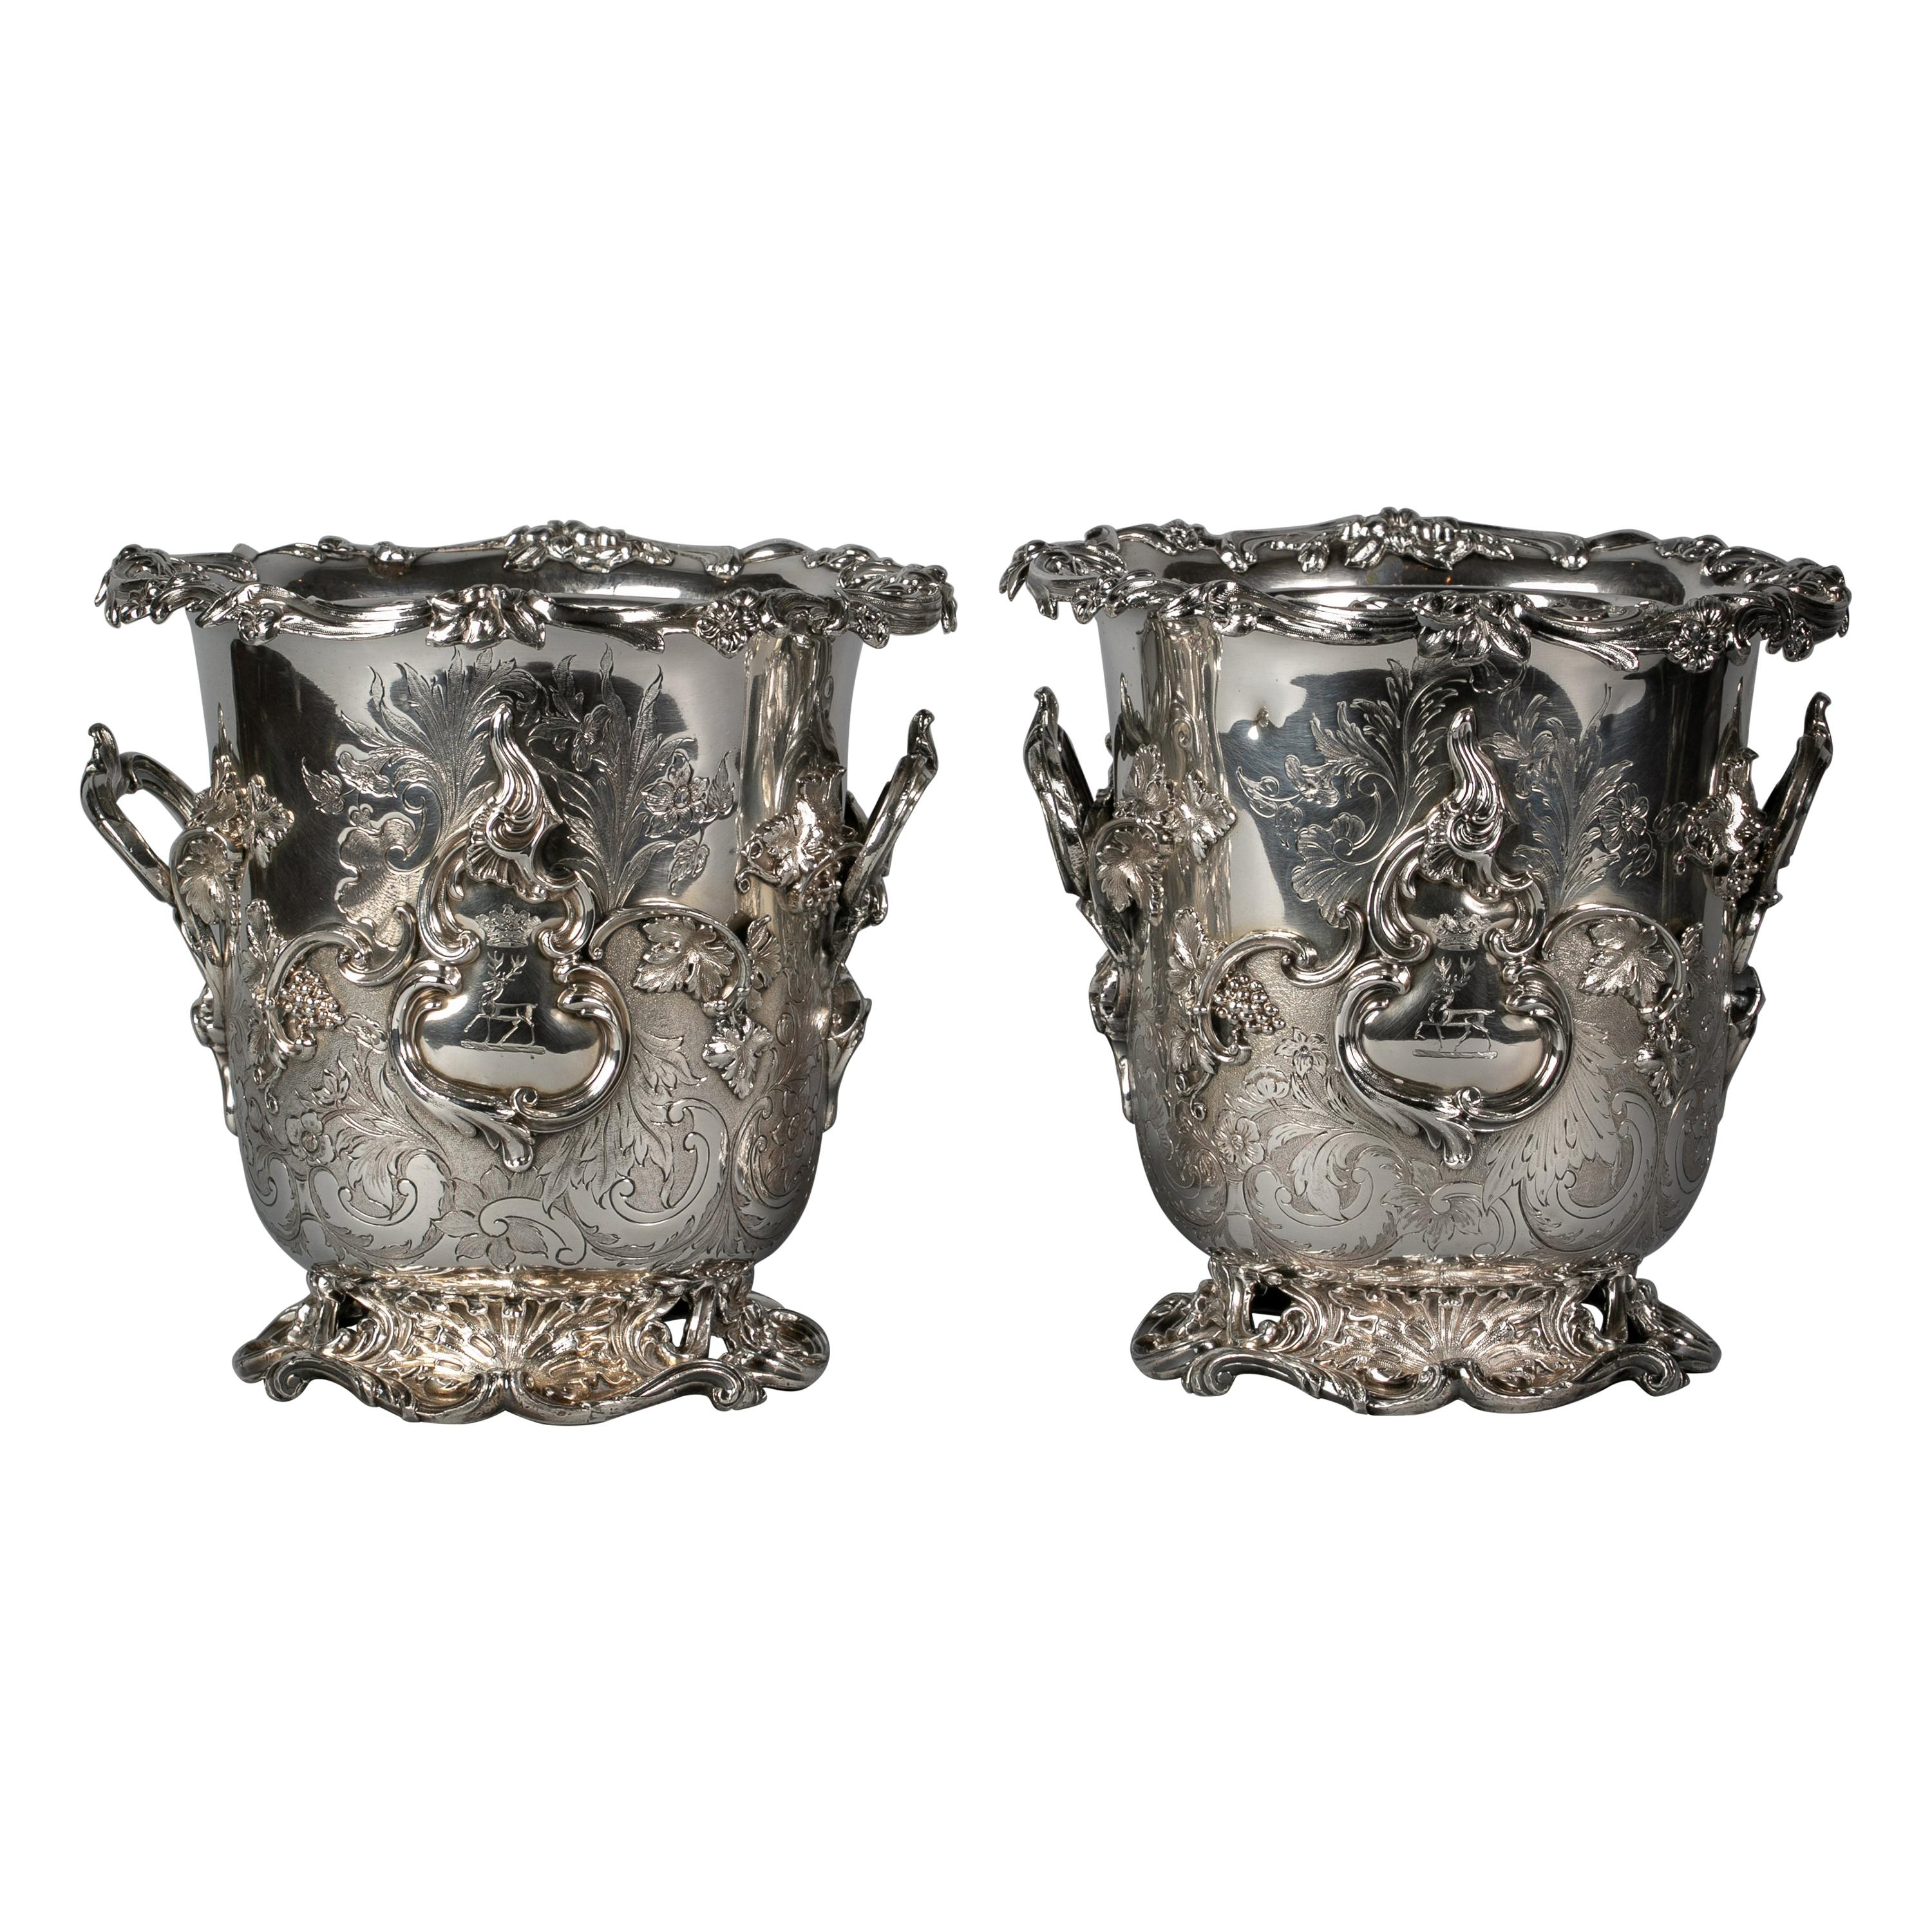 Pair of Very Fine Old Sheffield Wine Coolers, circa 1825